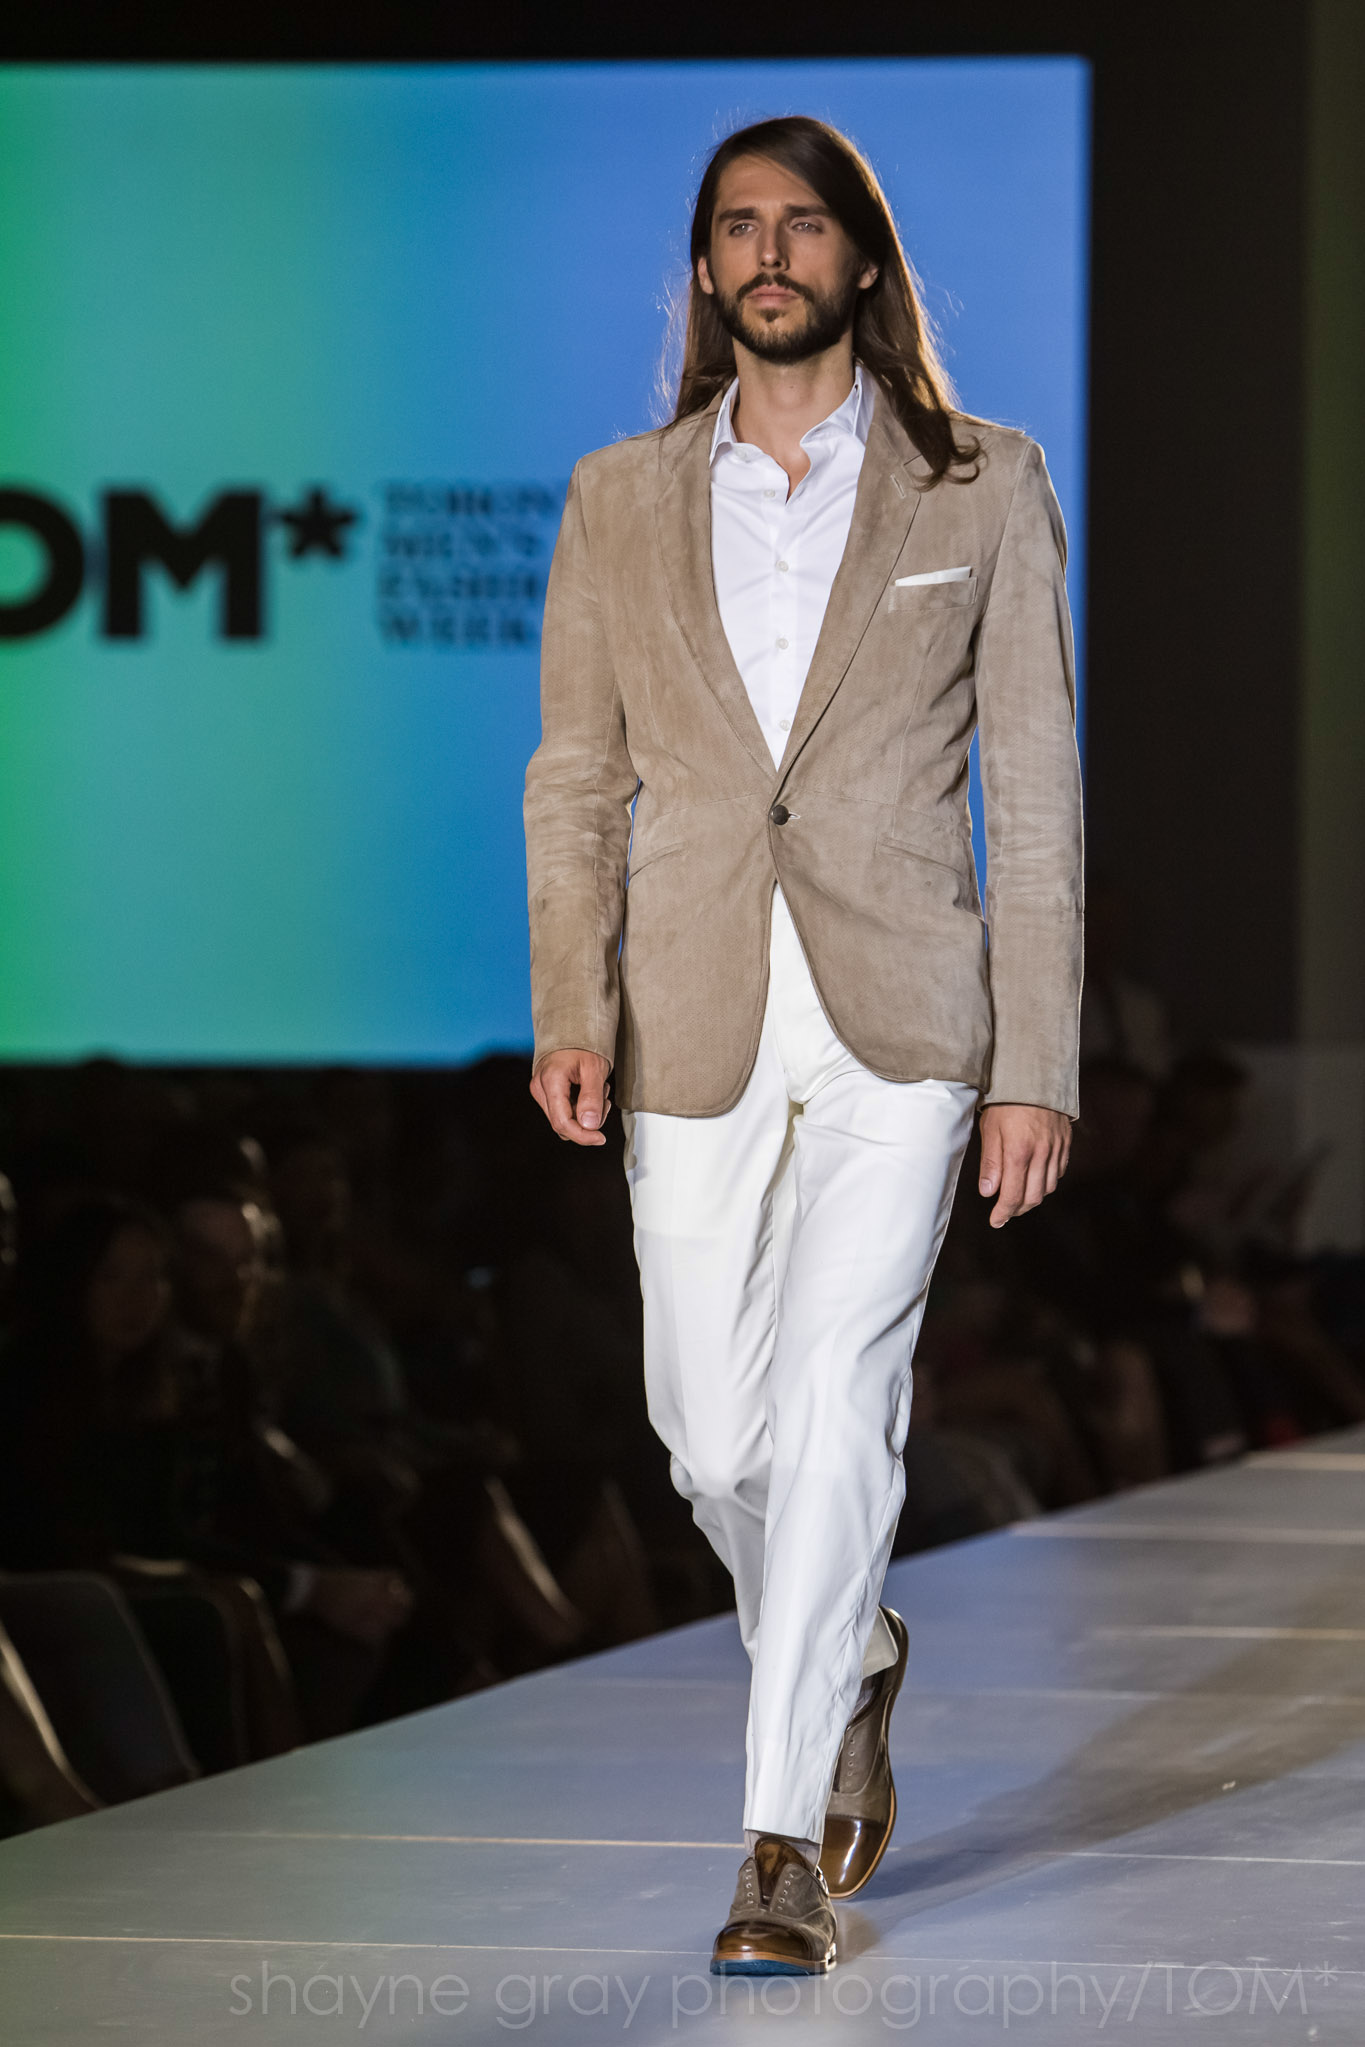 Shayne-Gray-Toronto-men's-fashion_week-TOM-christopher-bates-7205.jpg